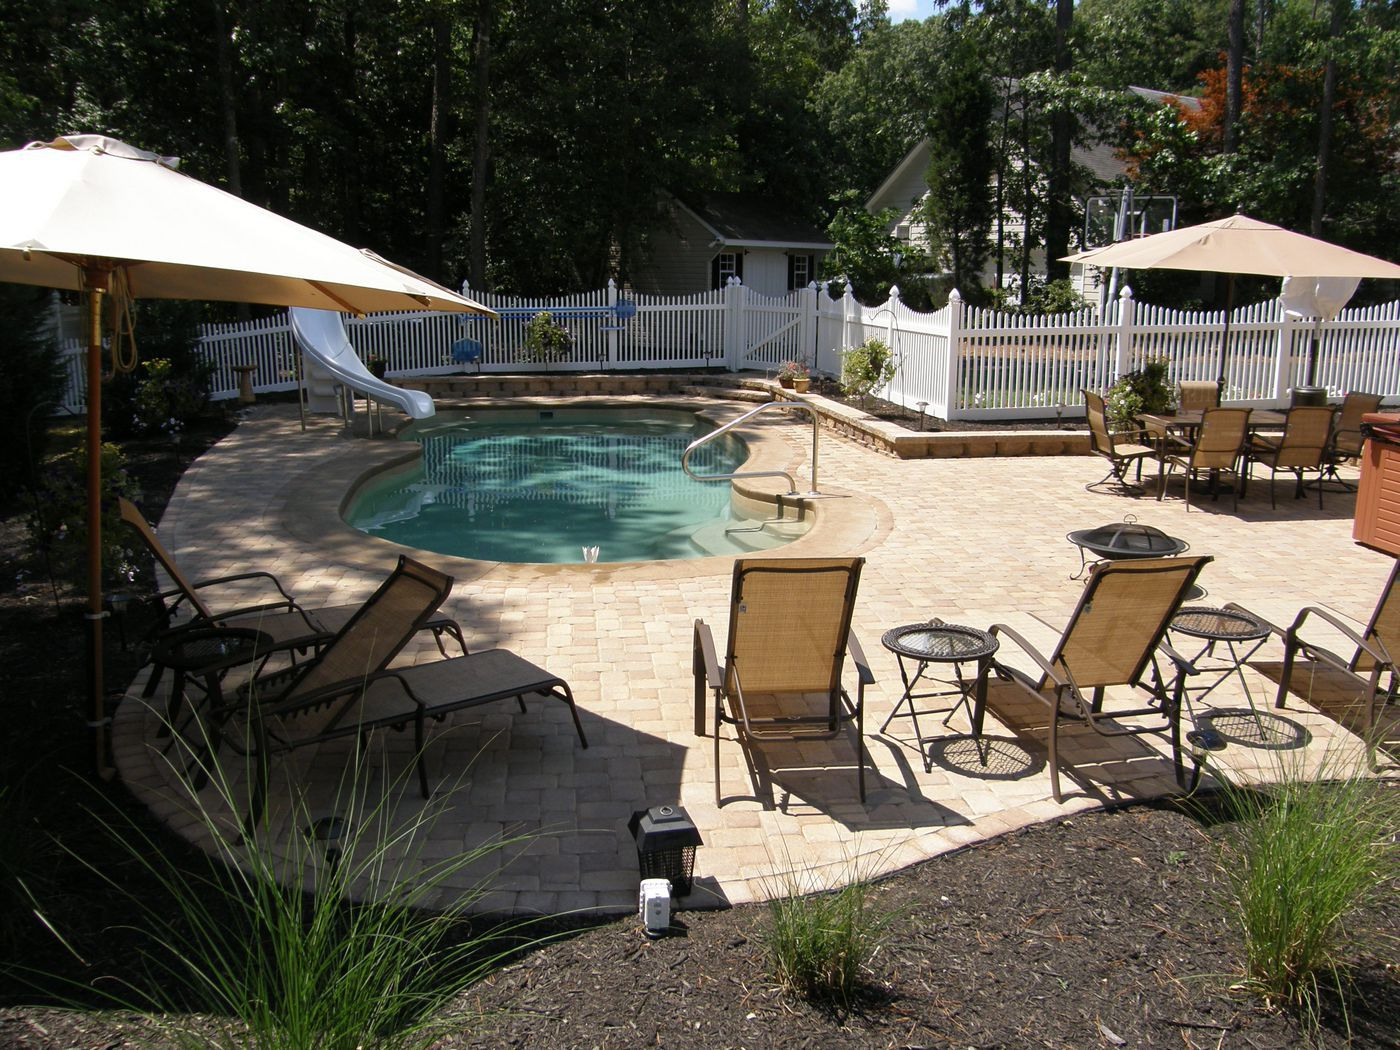 Pool Patio Materials Stamped Concrete Vs Pavers - Stamped concrete patio cost per square foot